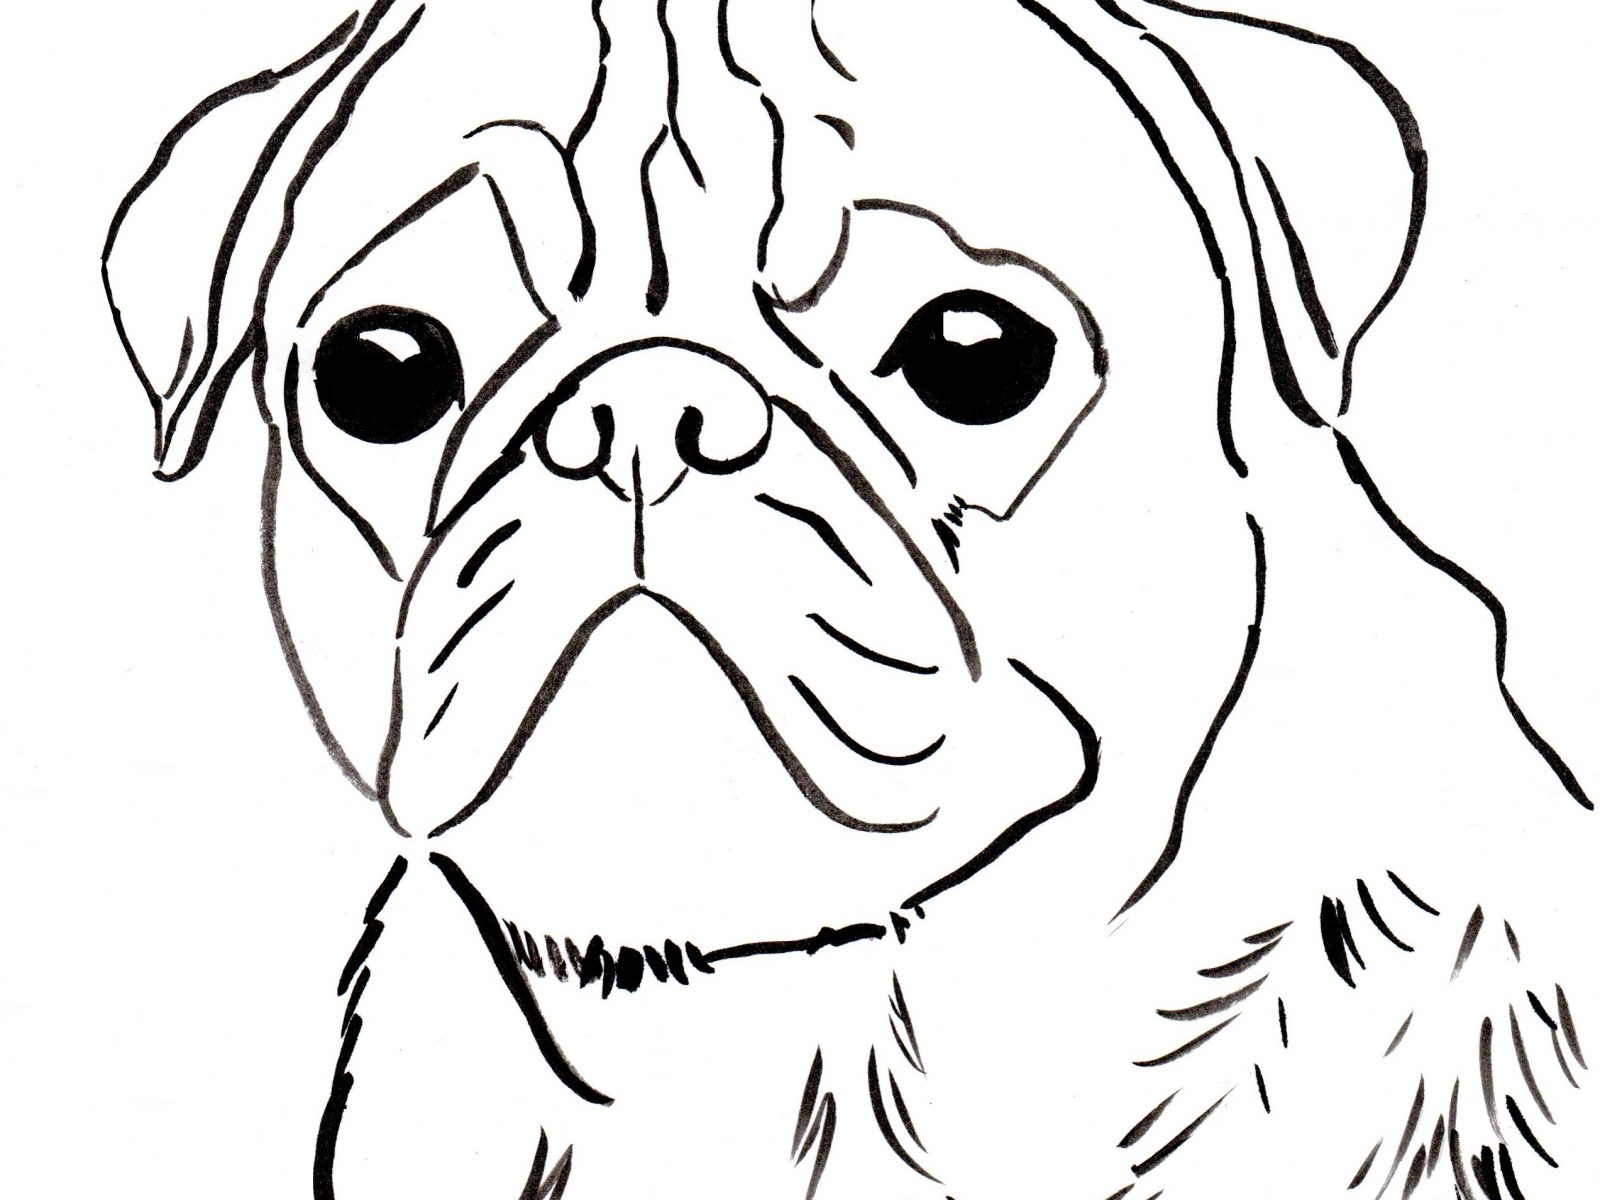 Pug Face Line Drawing : Pug dog drawing at getdrawings free for personal use